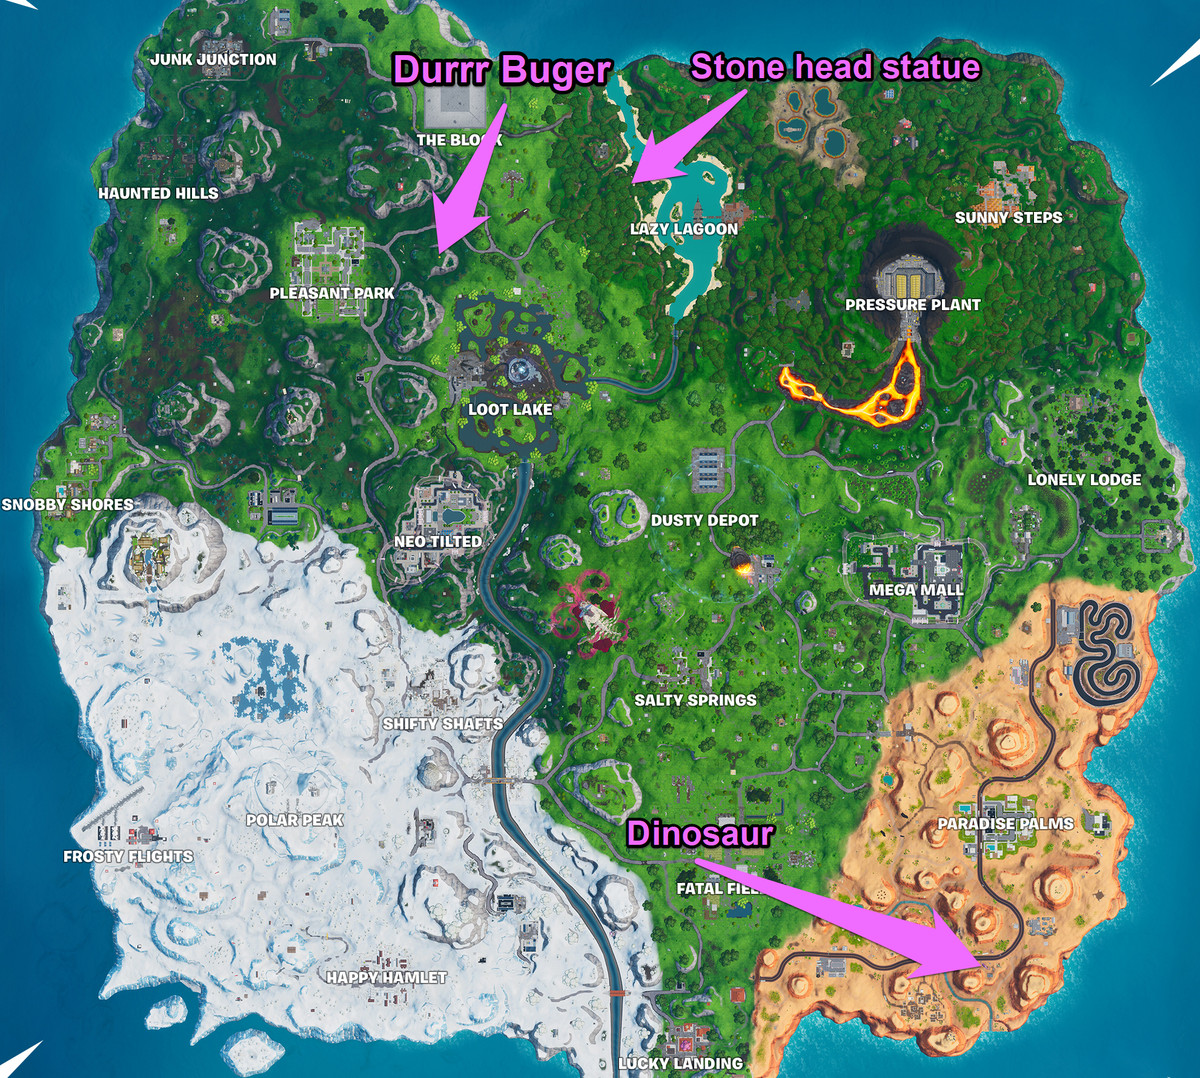 Fortnite's map with the locations for this challenge marked